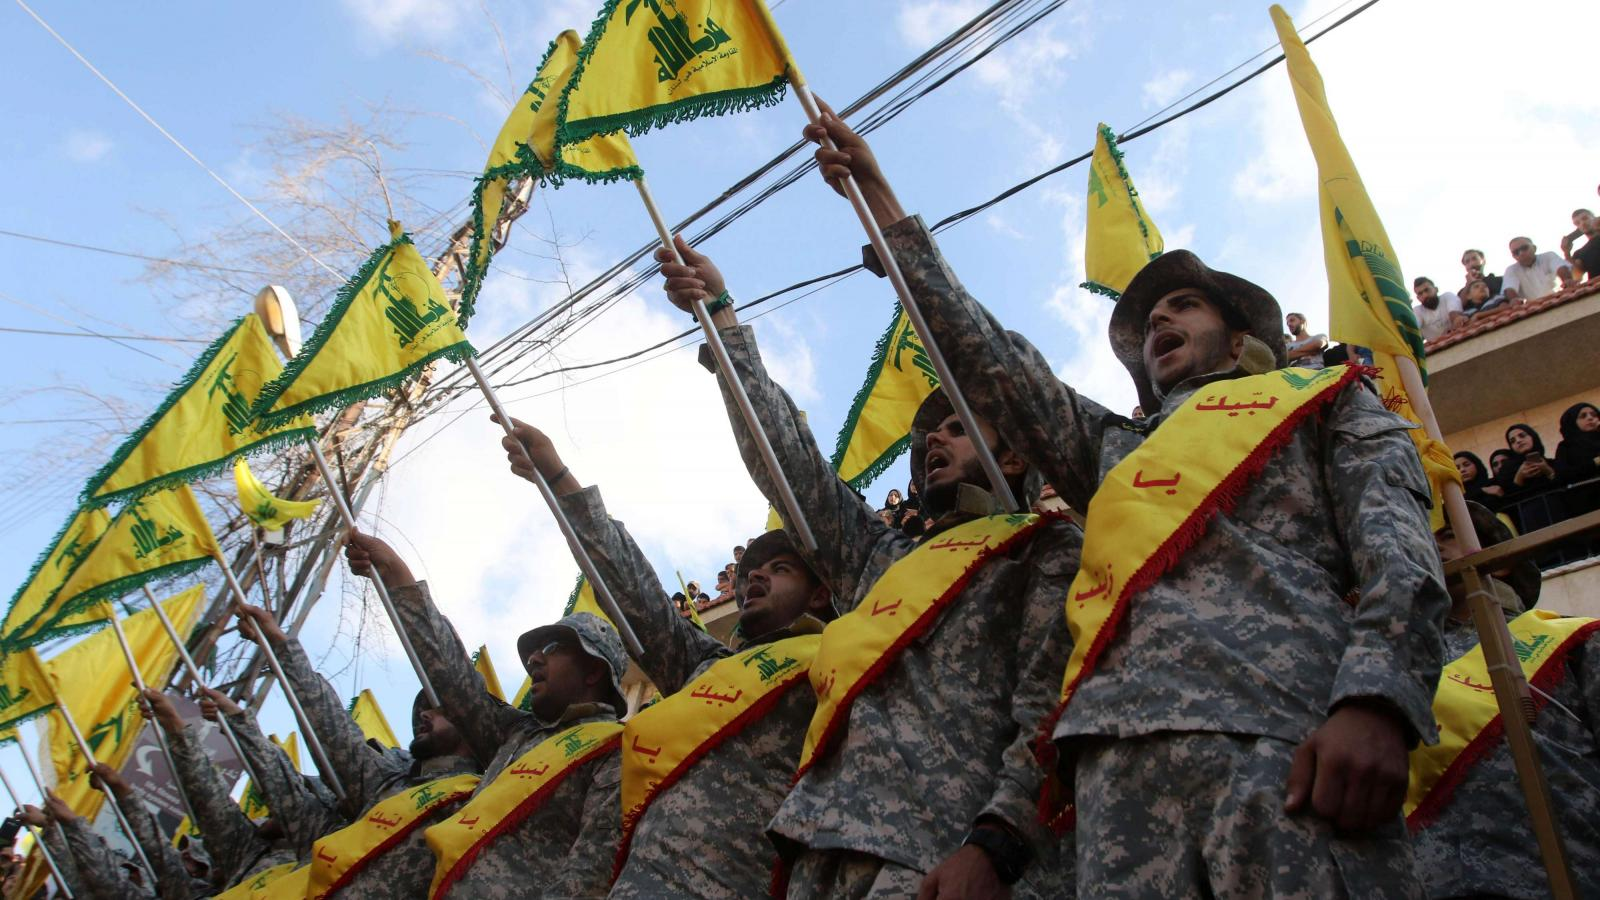 Iran-linked Hezbollah terrorist convicted in US for planning attacks